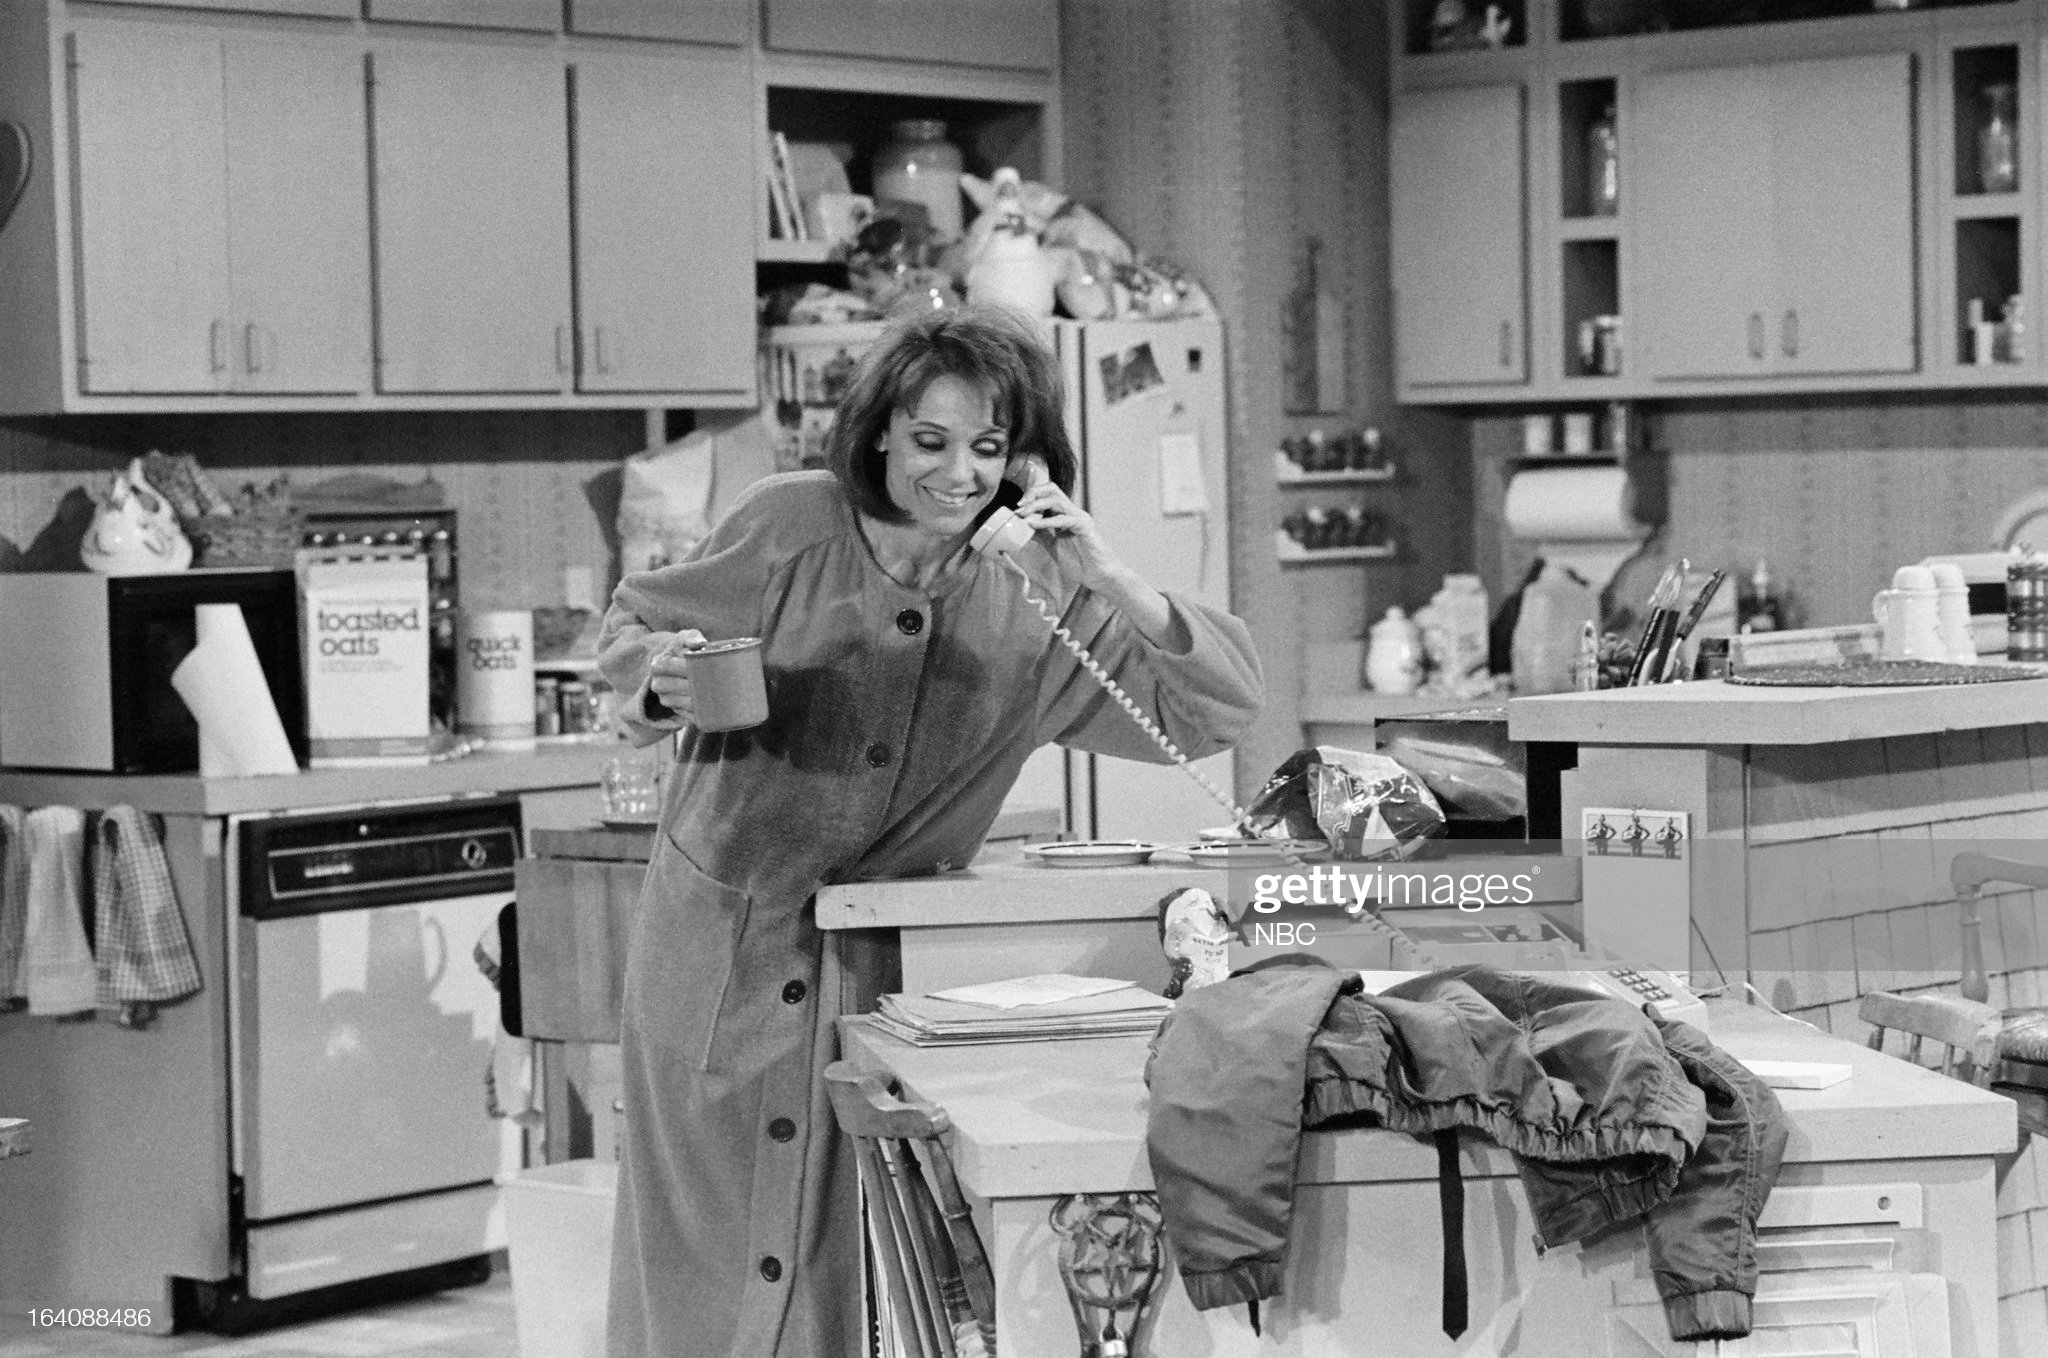 full-moon-episode-201-pictured-valerie-harper-as-valerie-hogan-picture-id164088486